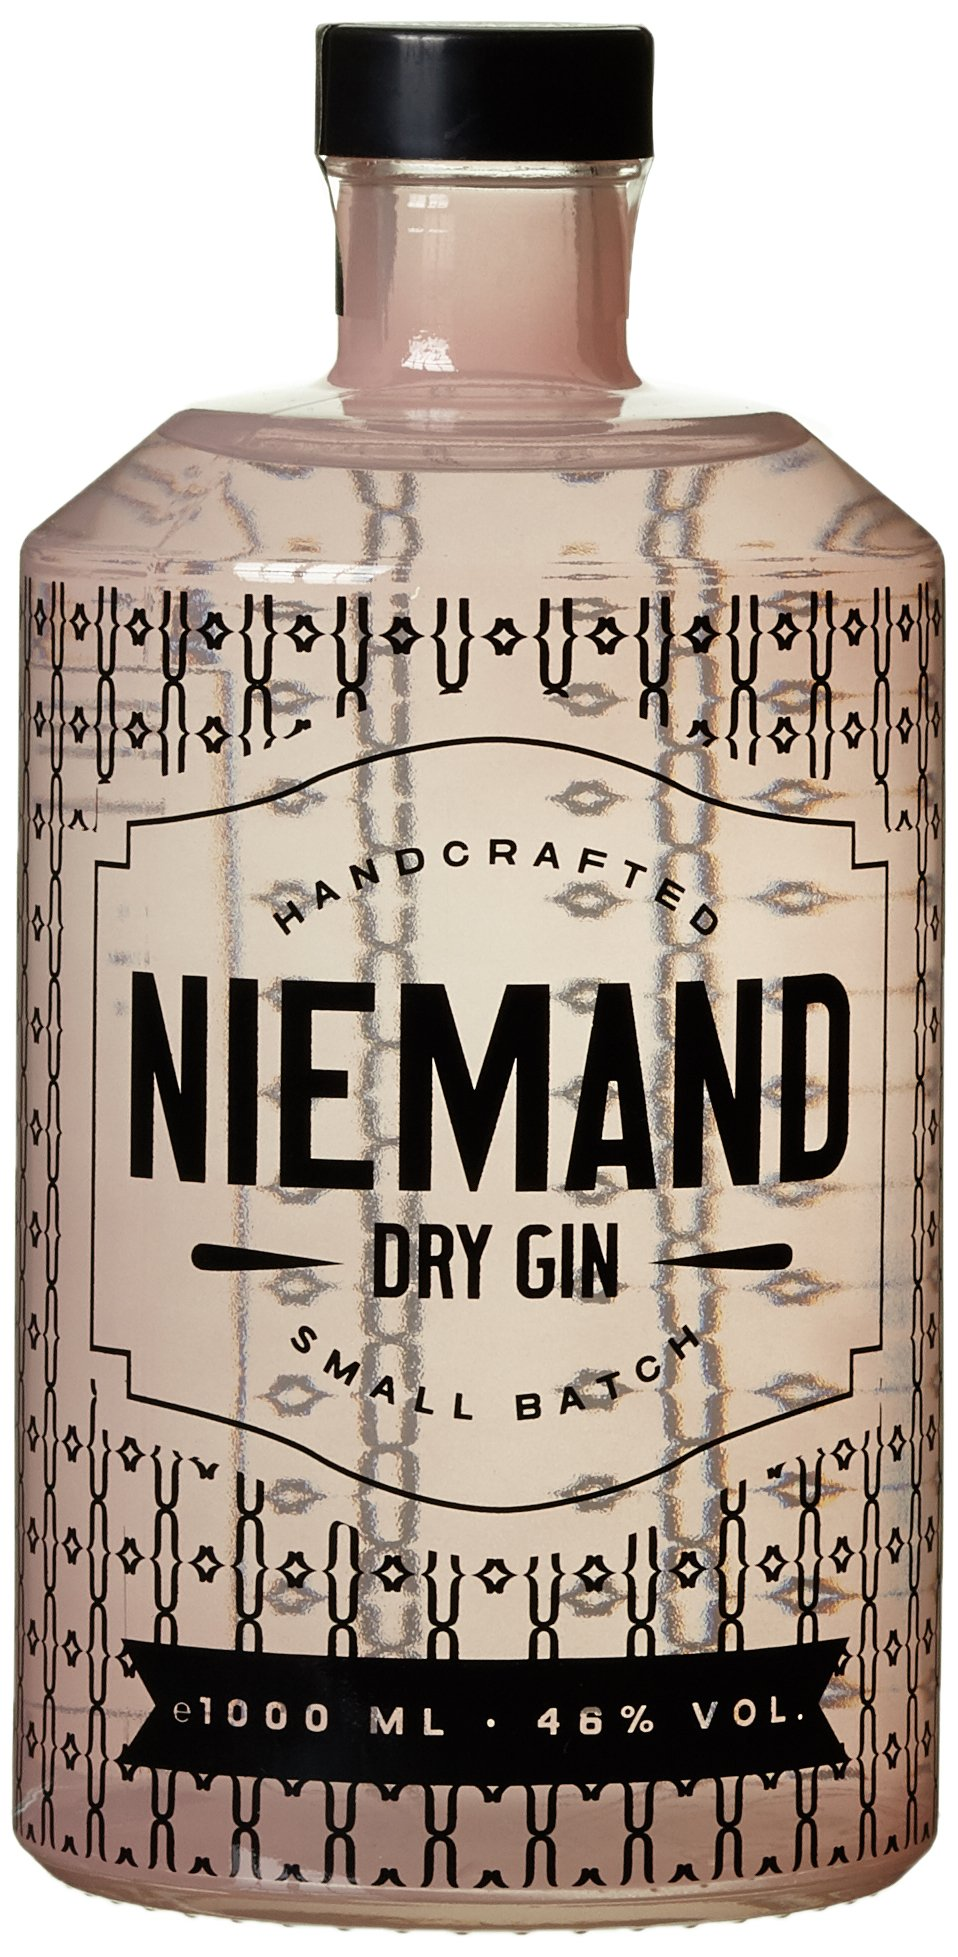 Niemand-Dry-Gin-Handcrafted-46-vol-1-x-1-l